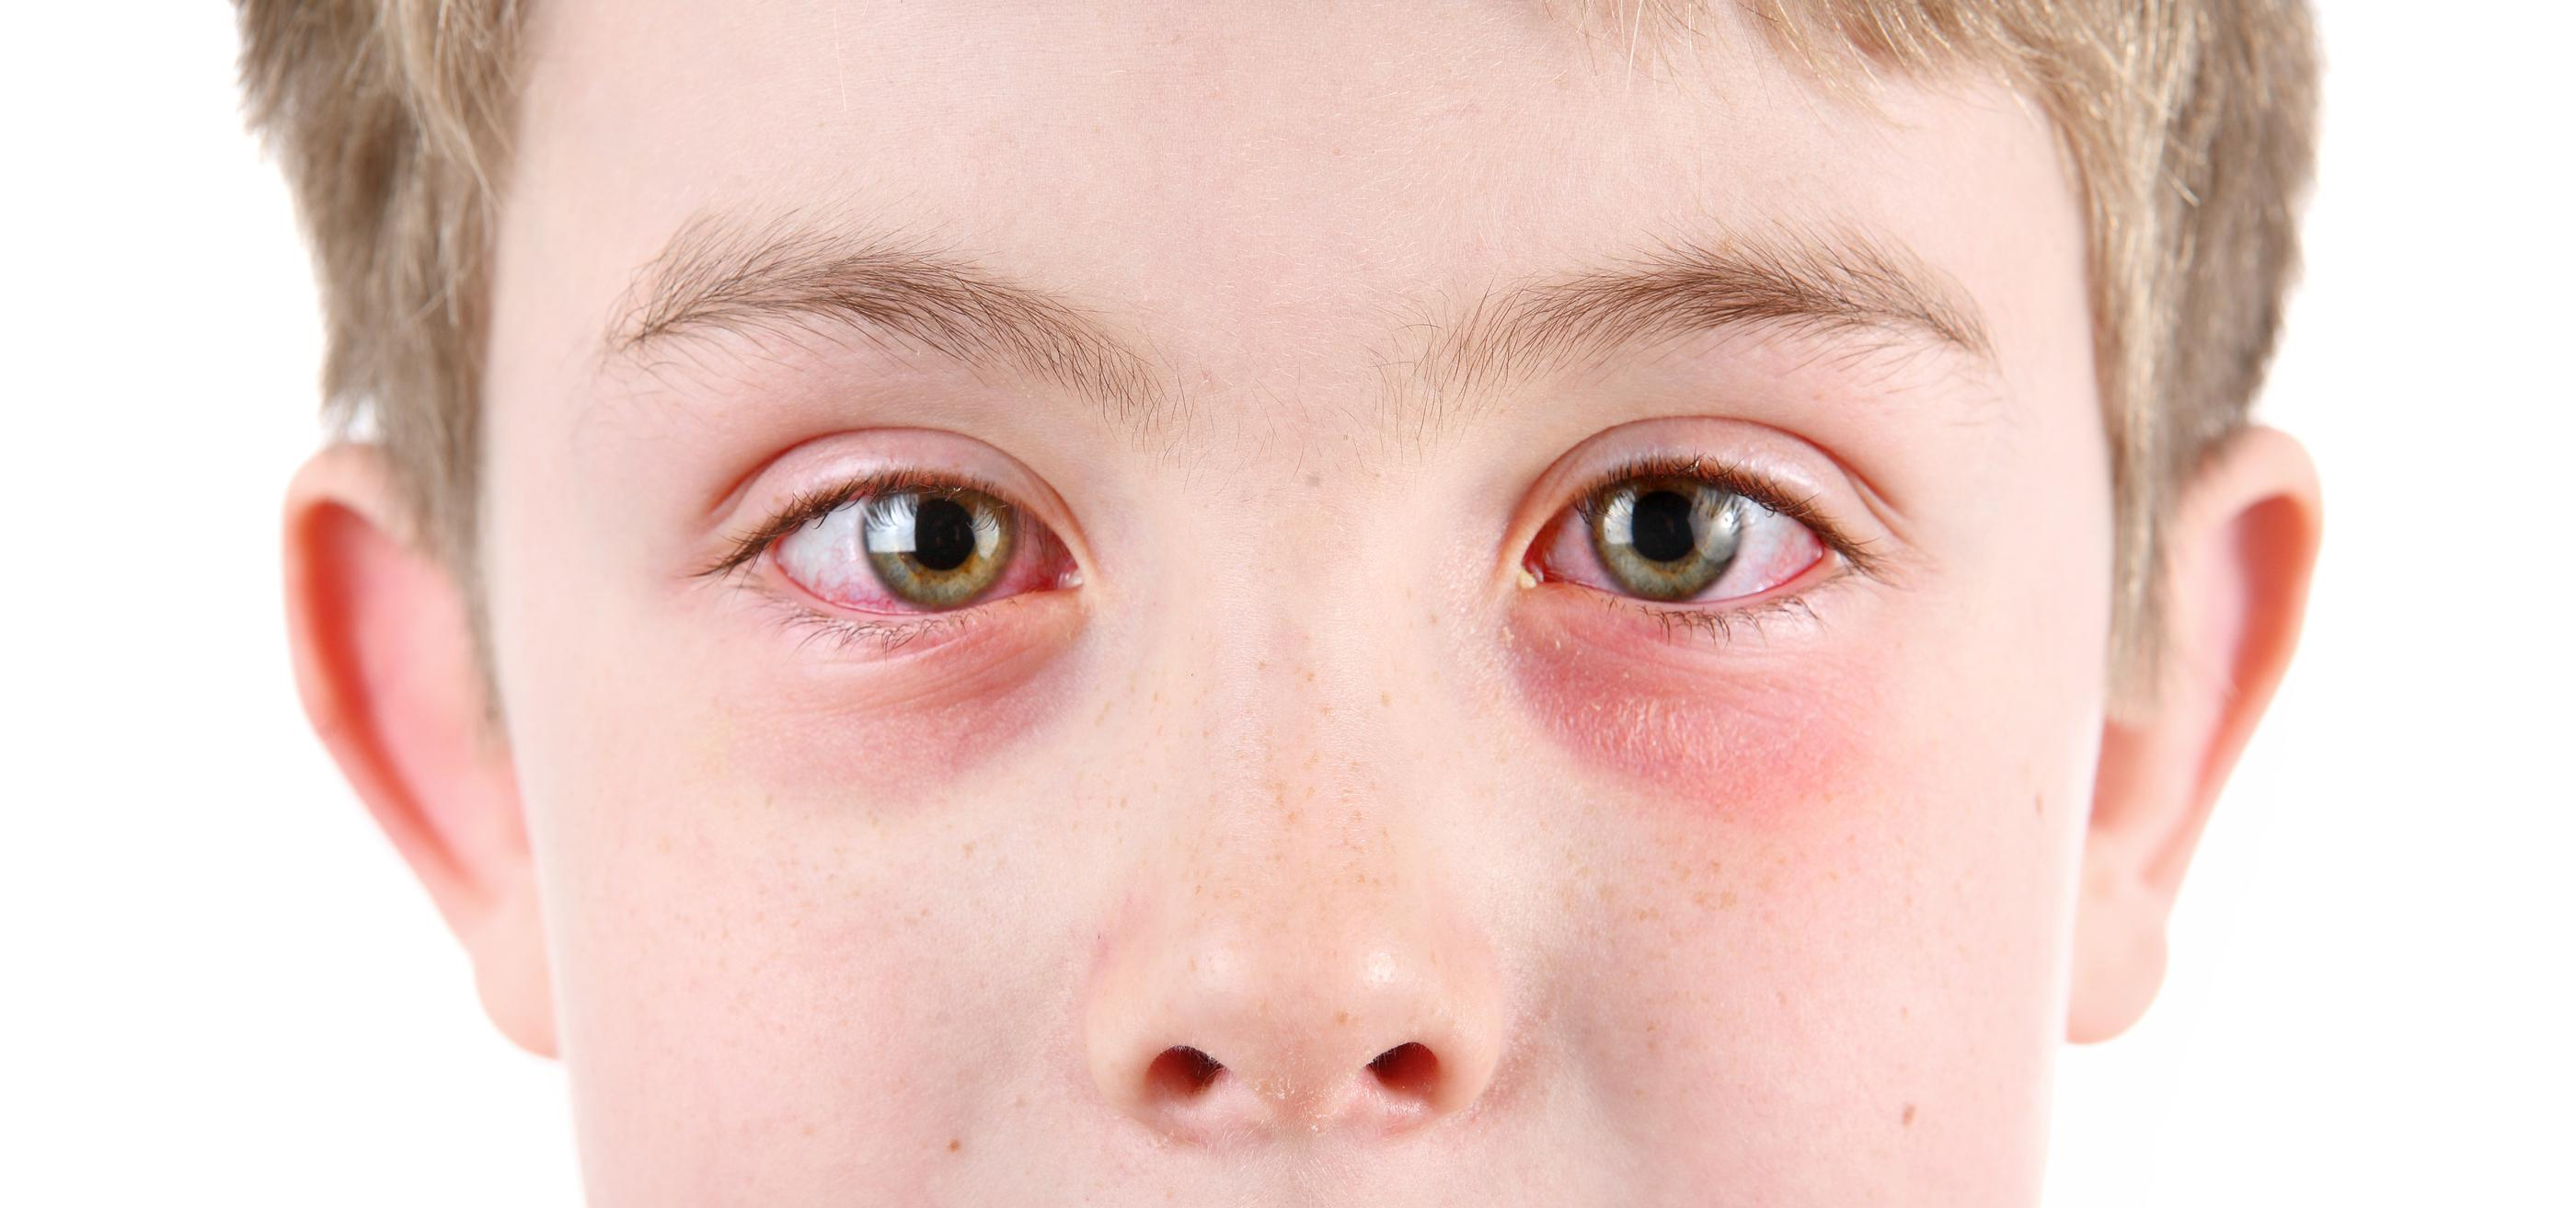 Allergic conjunctivitis treatment for good vision - photo#19